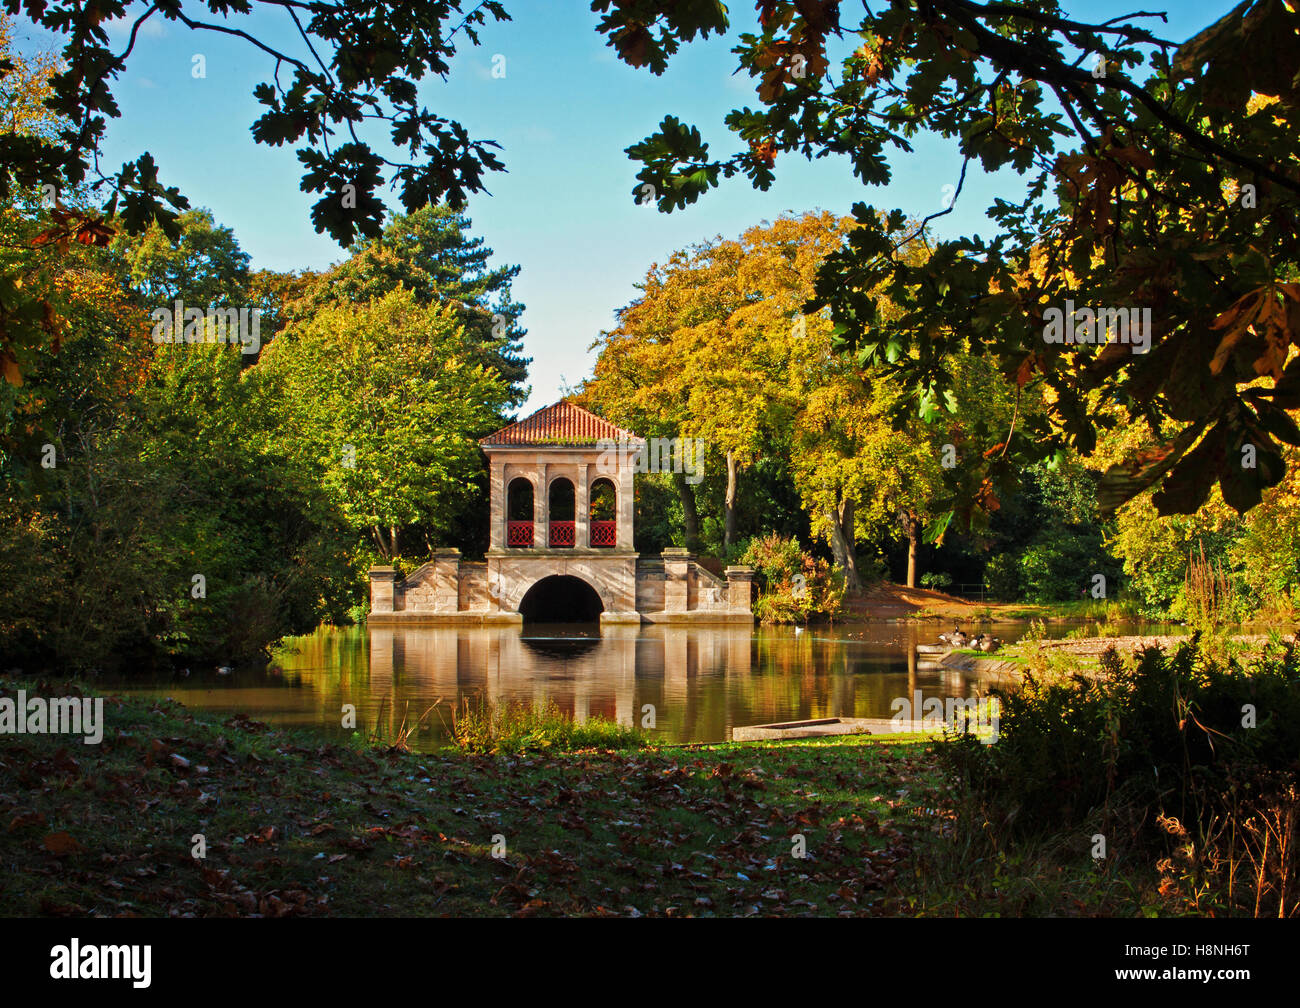 The boathouse at Birkenhead Park, framed by surrounding foliage - Stock Image